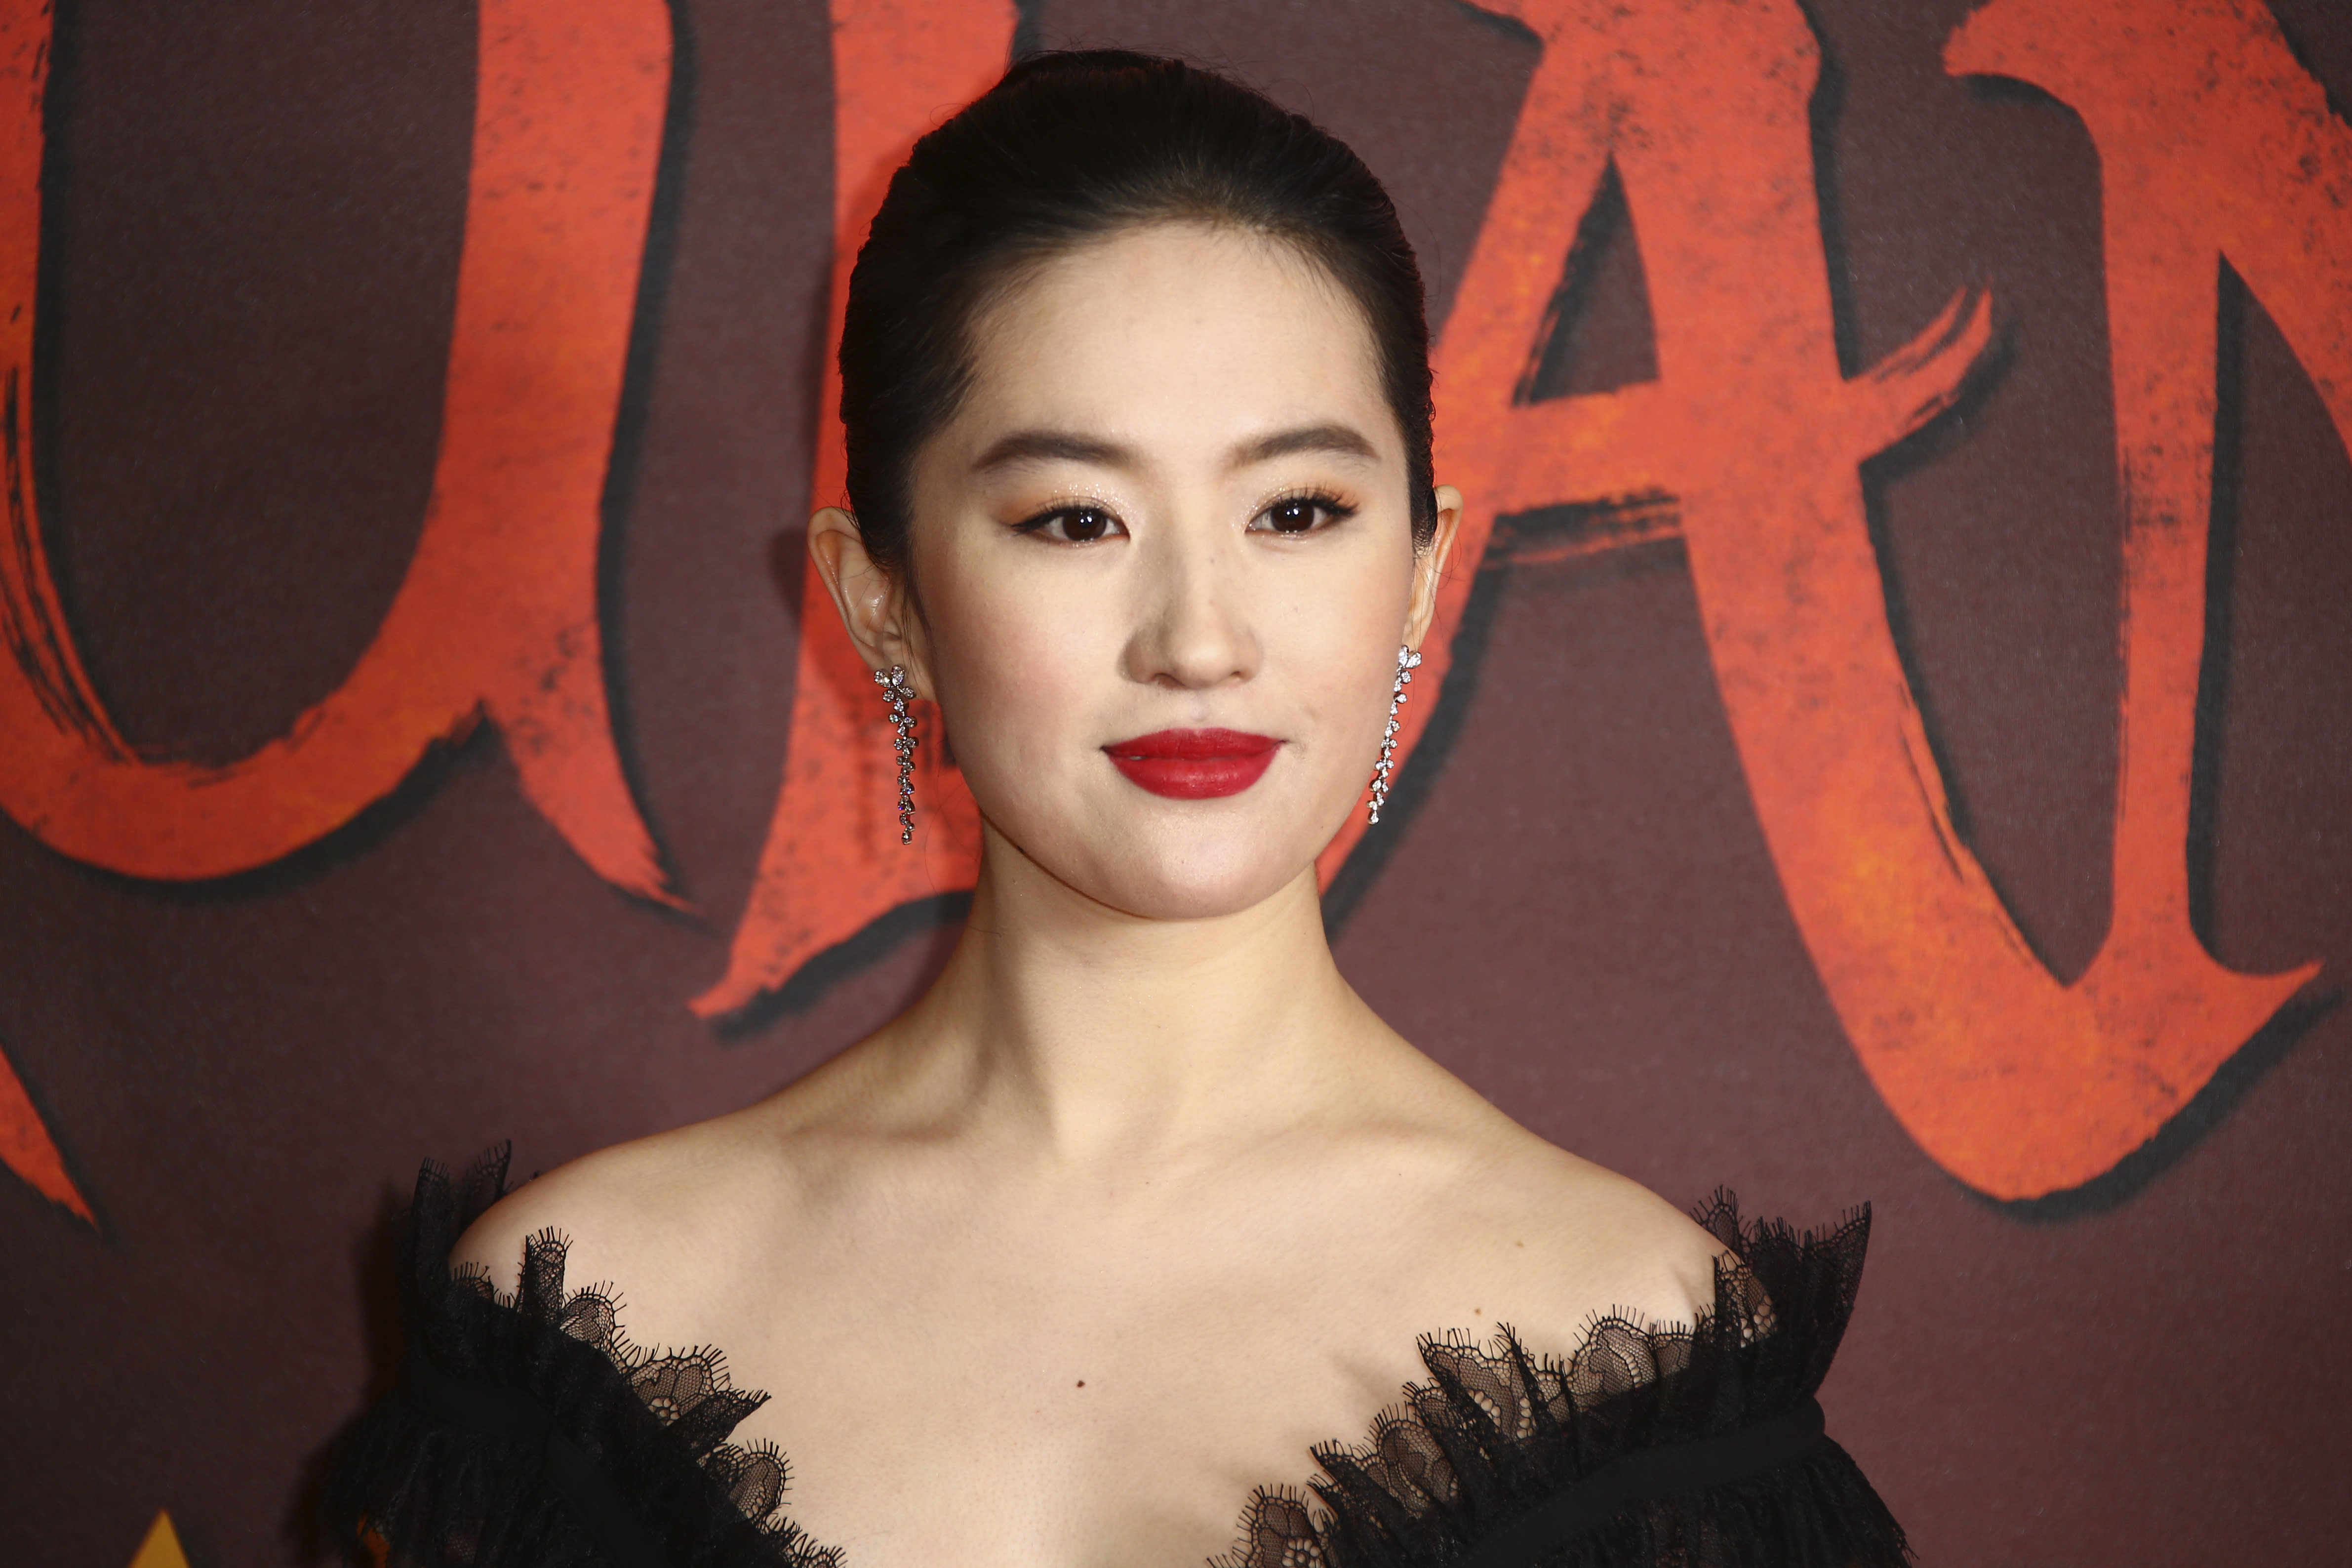 'Mulan' producer on boycott threats: 'I feel badly ... the conversation turns to this'